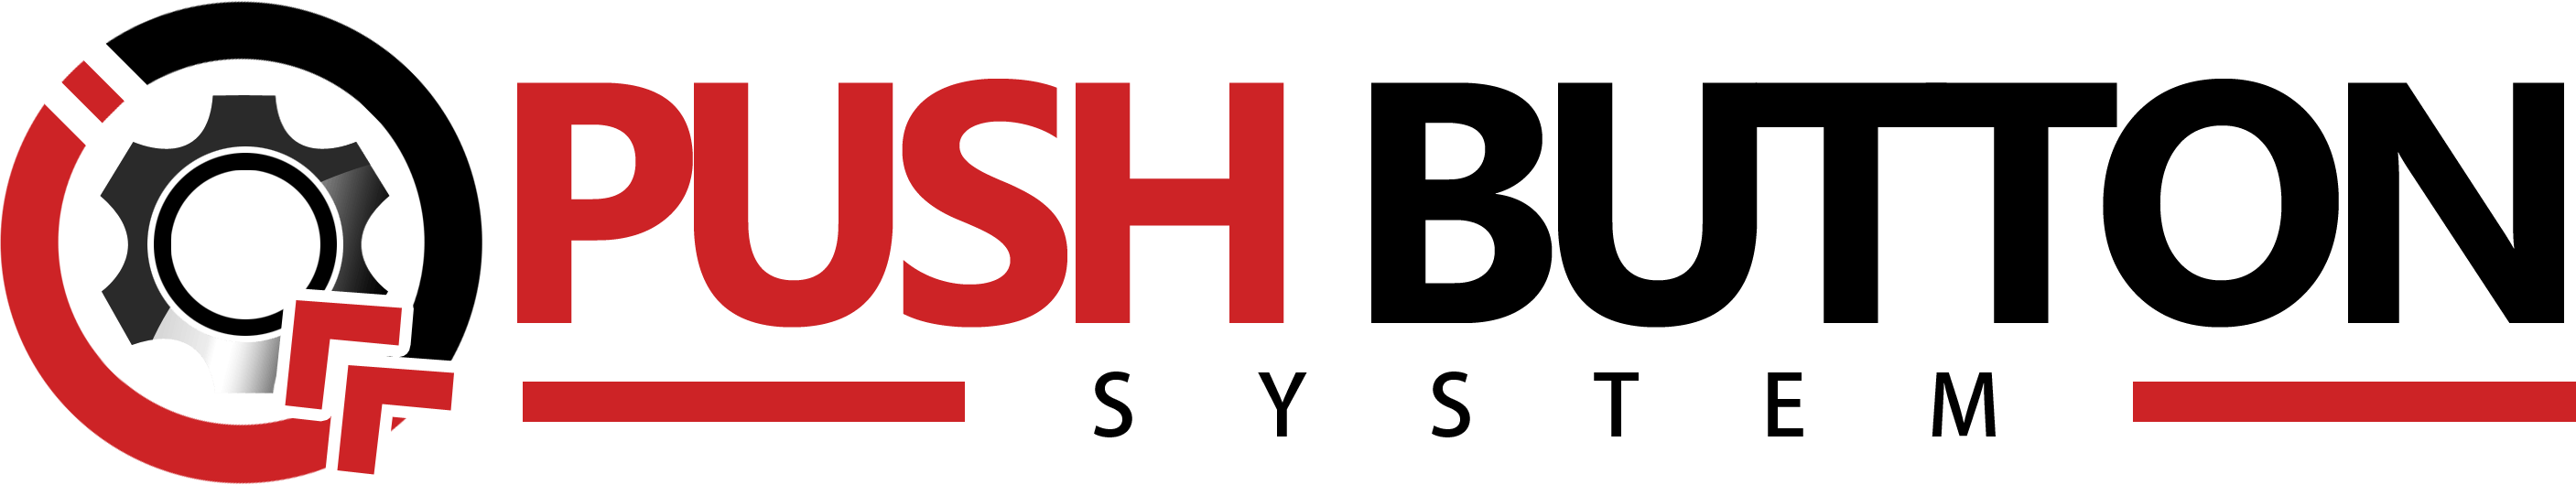 push-button-system-review